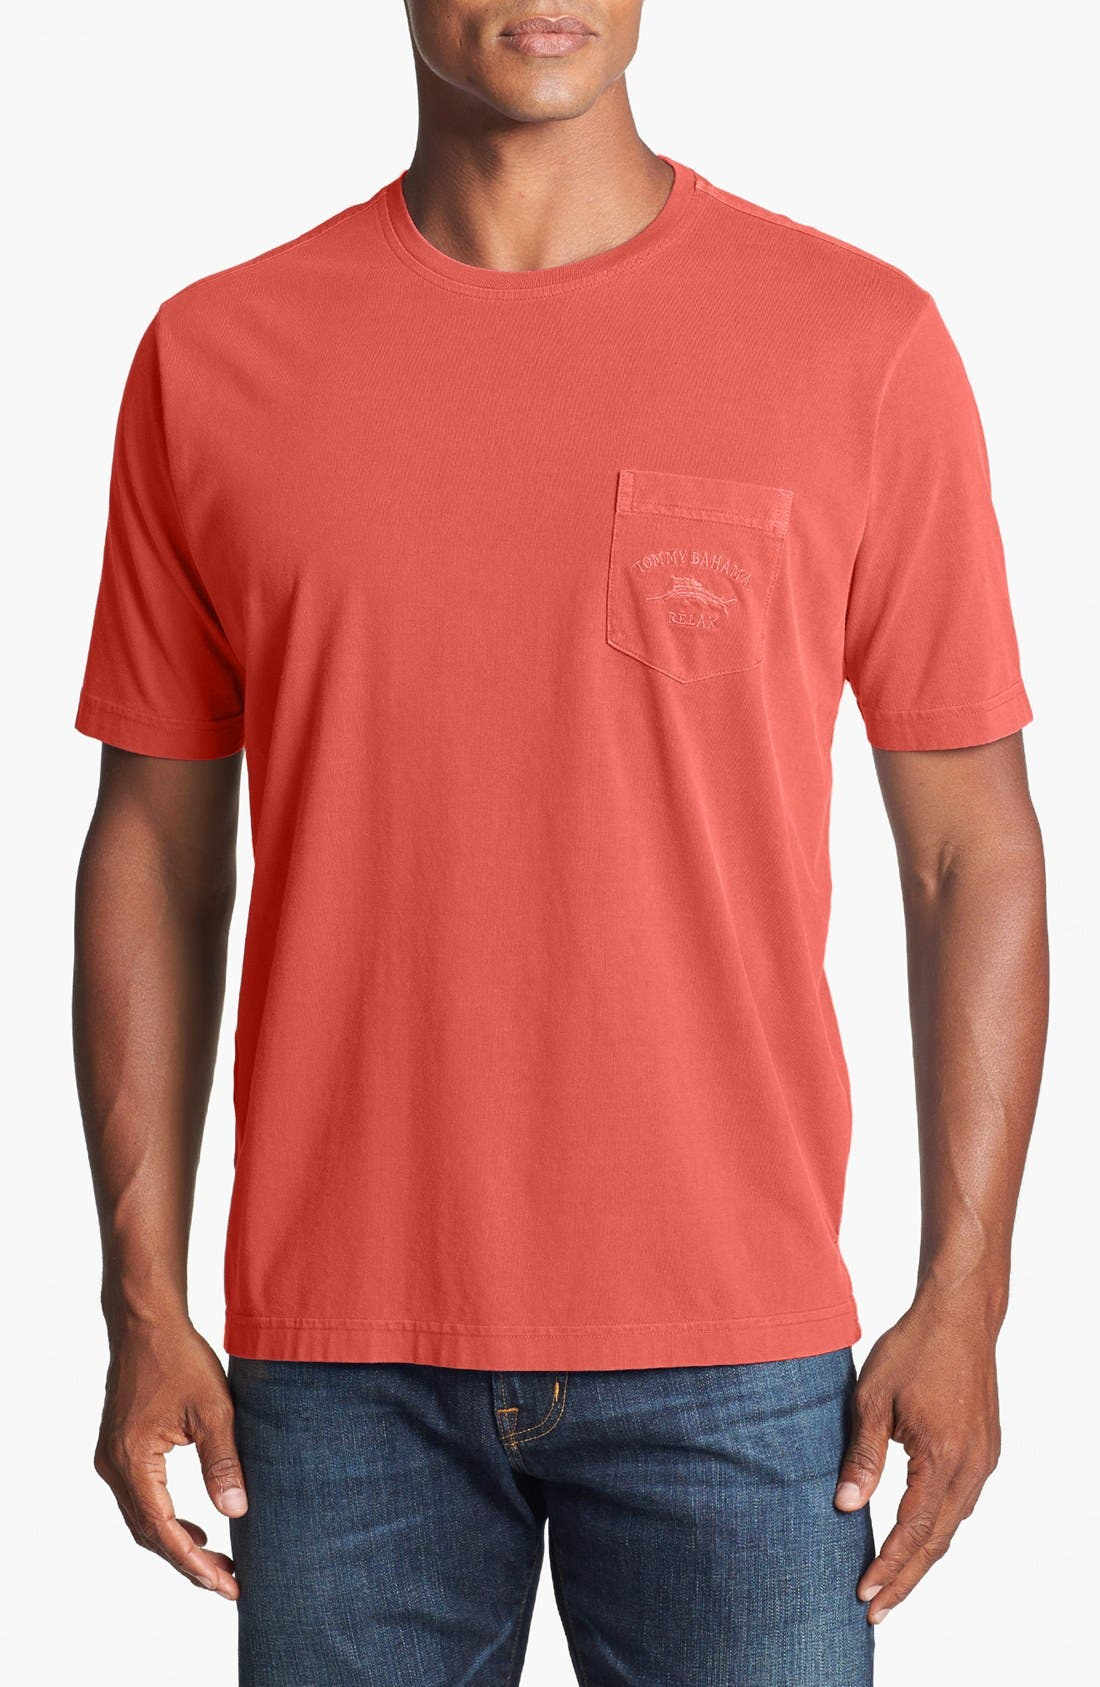 Alternate Image 1 Selected - Tommy Bahama Relax 'Bahama Tide' Island Modern Fit Short Sleeve T-Shirt